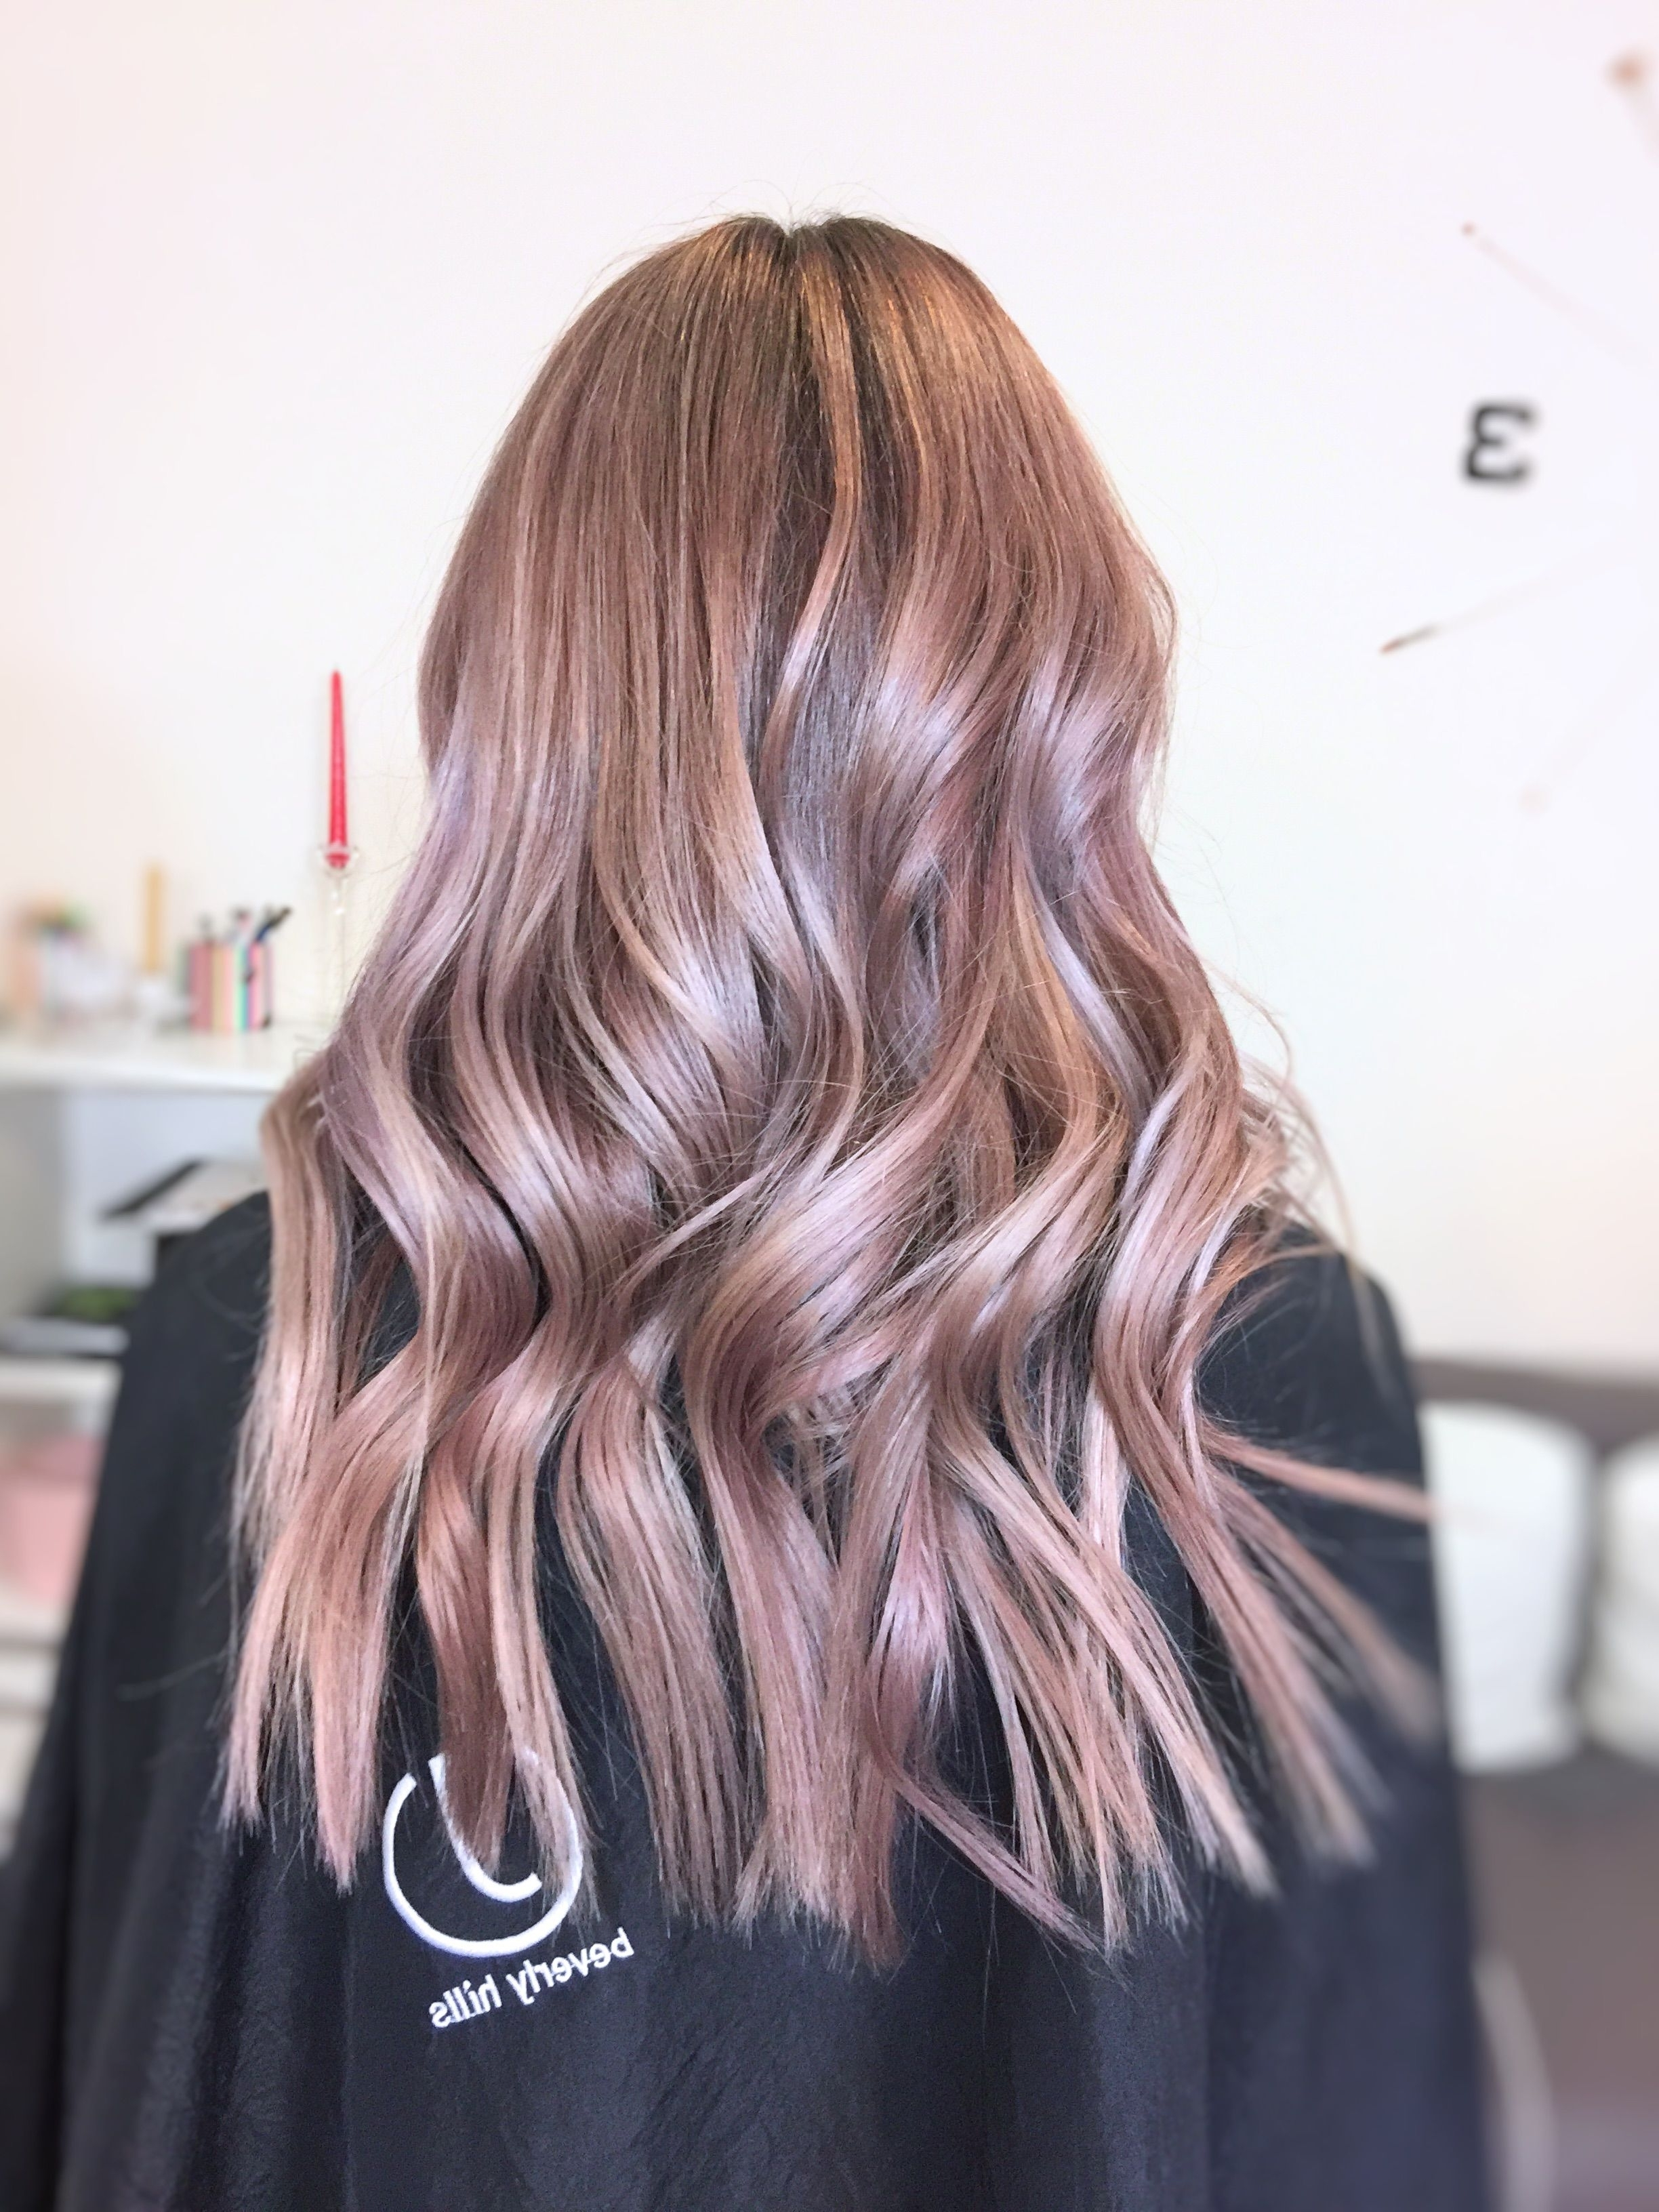 Popular Rosewood Blonde Waves Hairstyles Inside Pinheather On Hair (View 17 of 20)